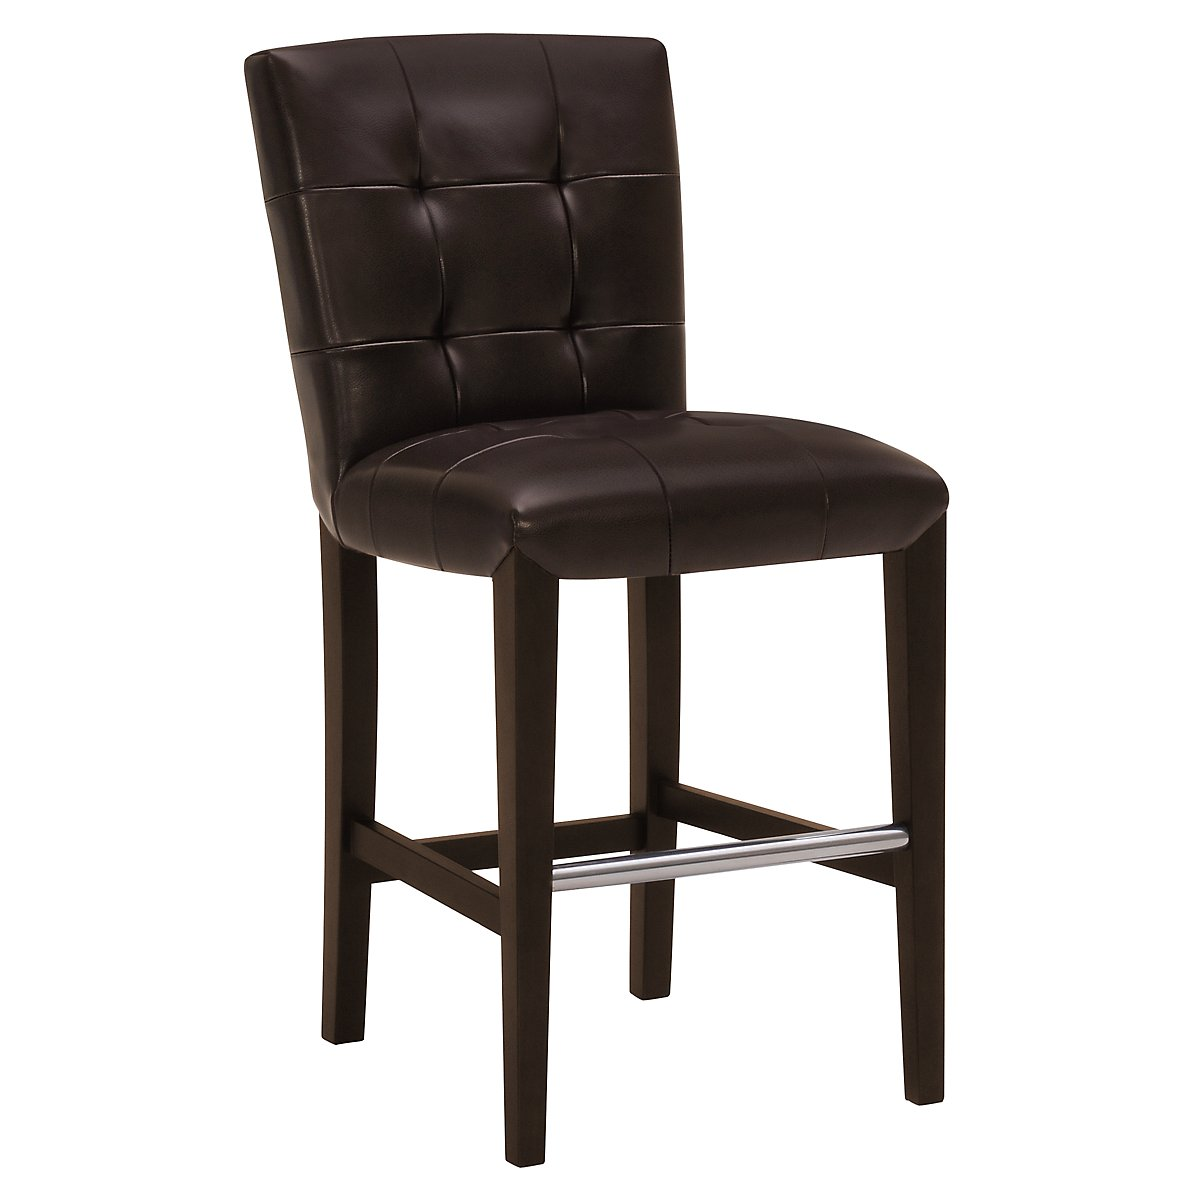 "Trisha Dark Brown Bonded Leather 24"" Upholstered Barstool"